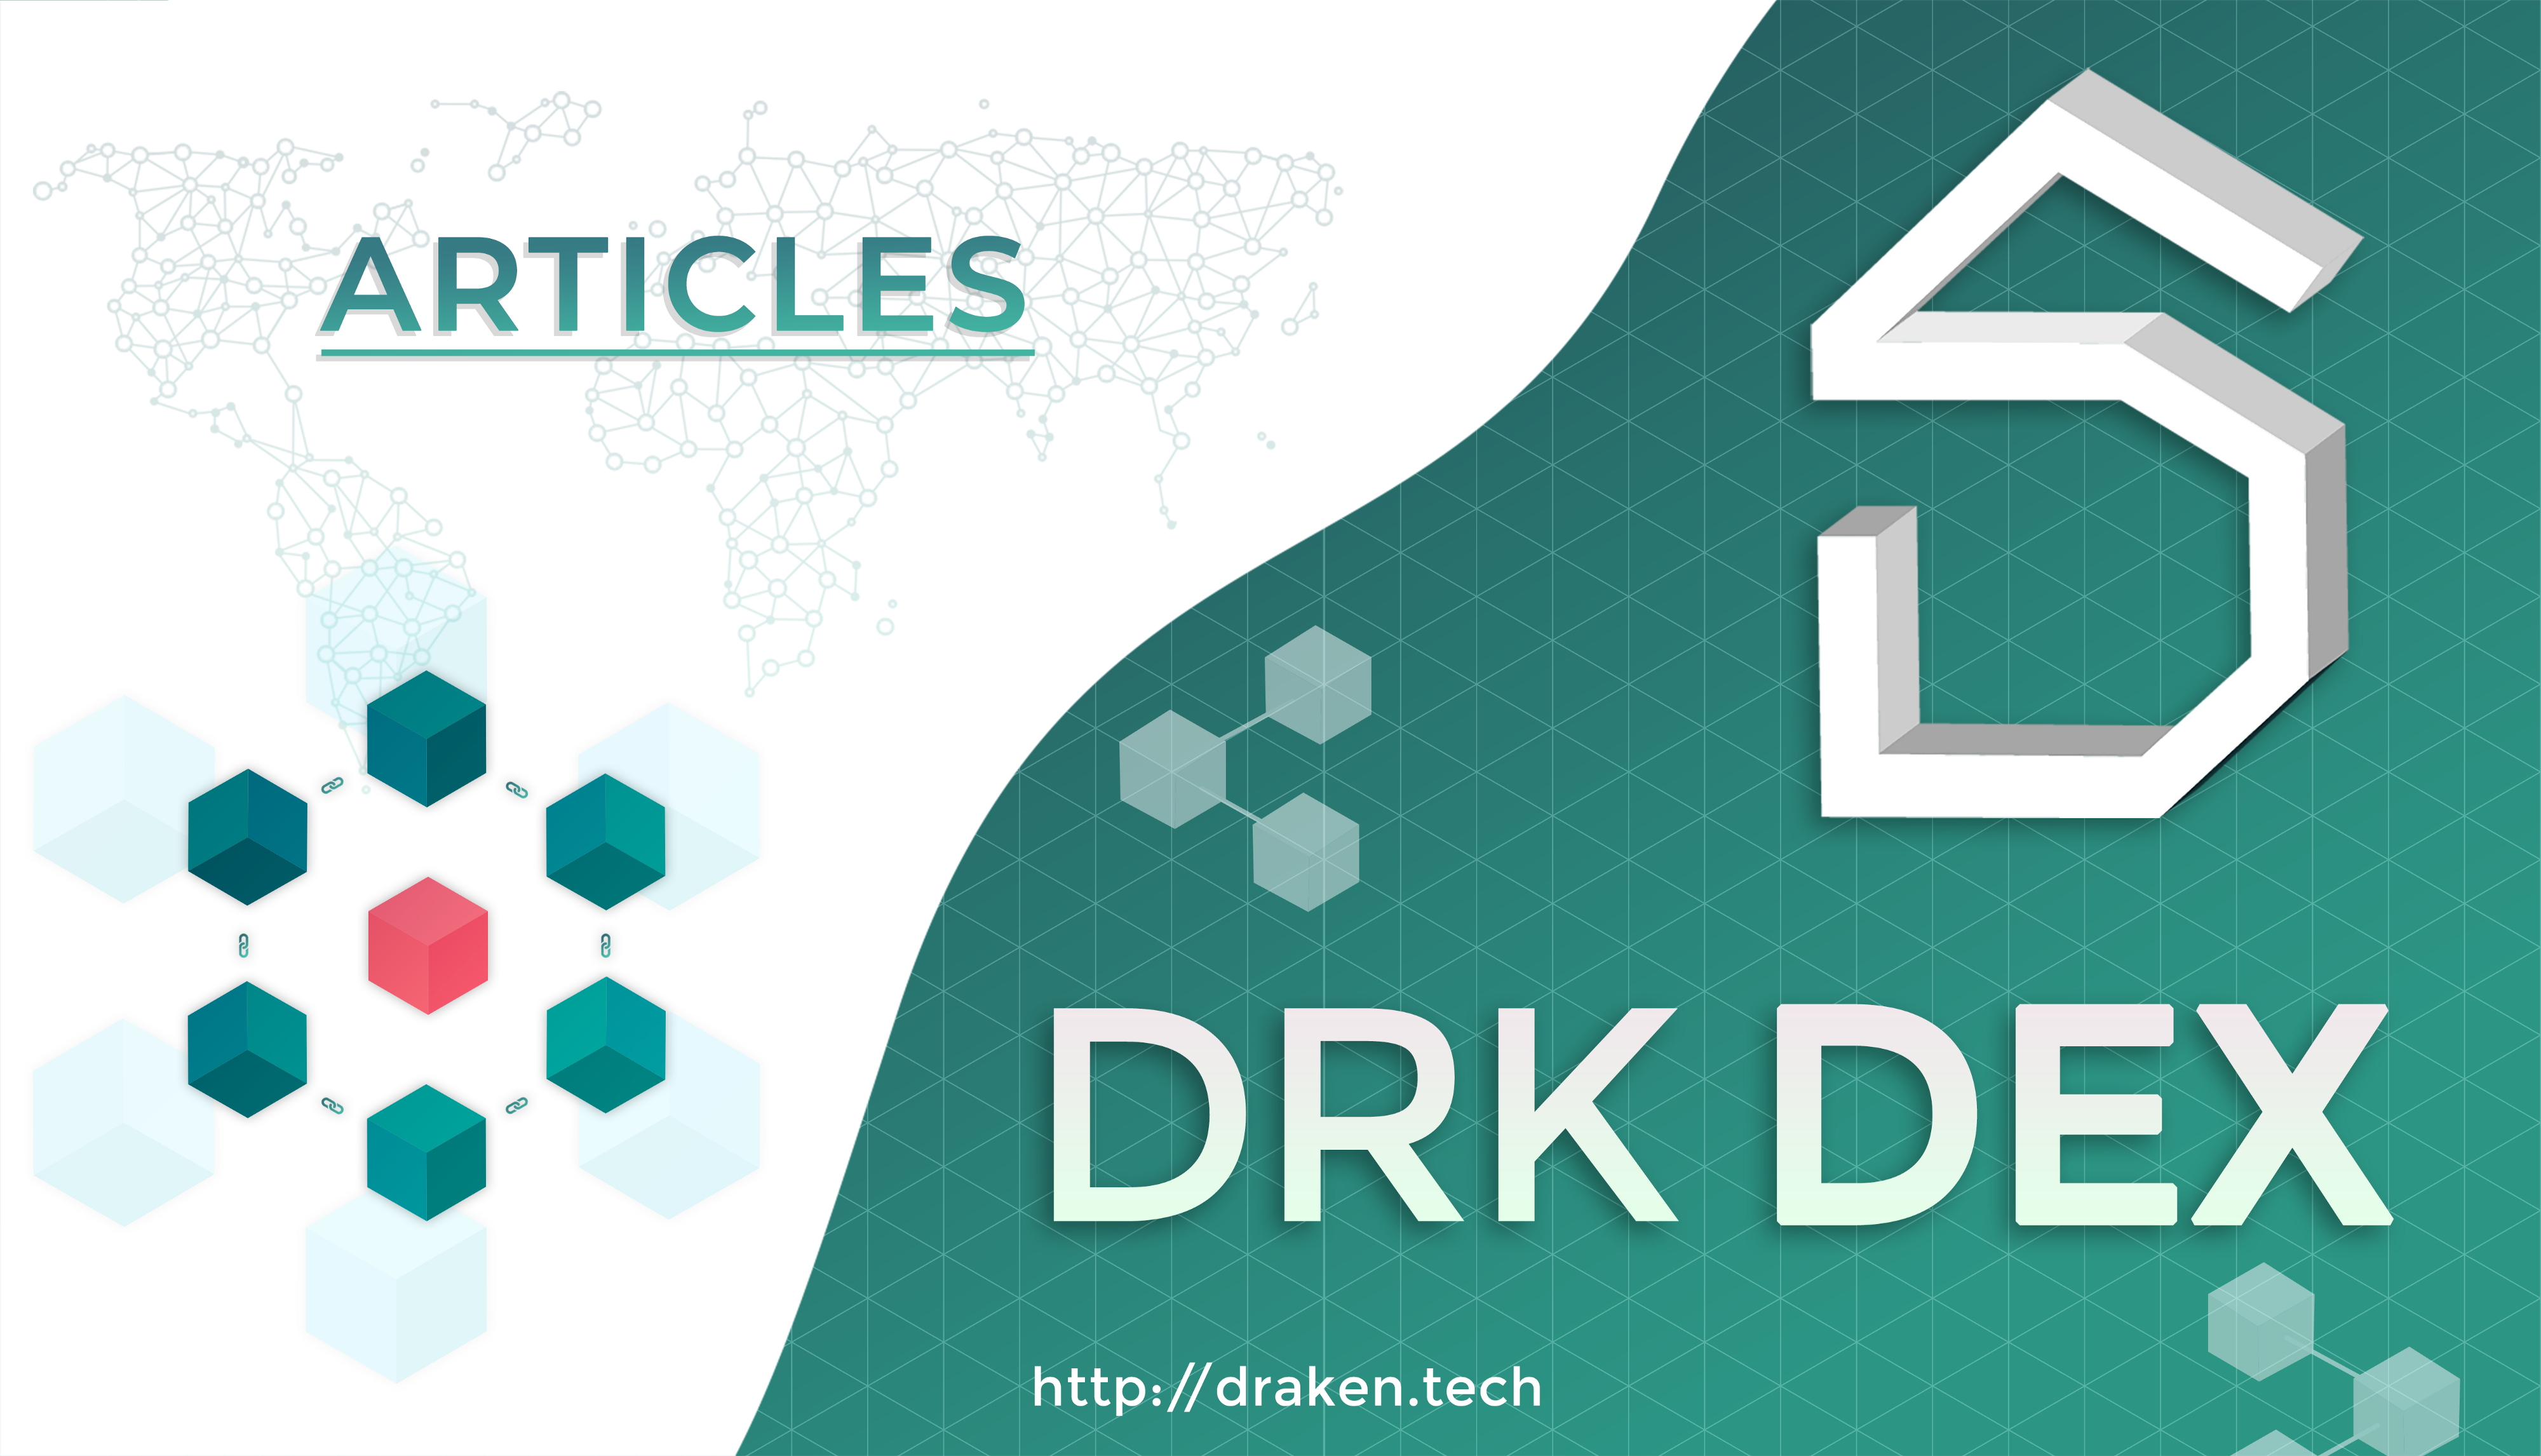 drk cryptocurrency